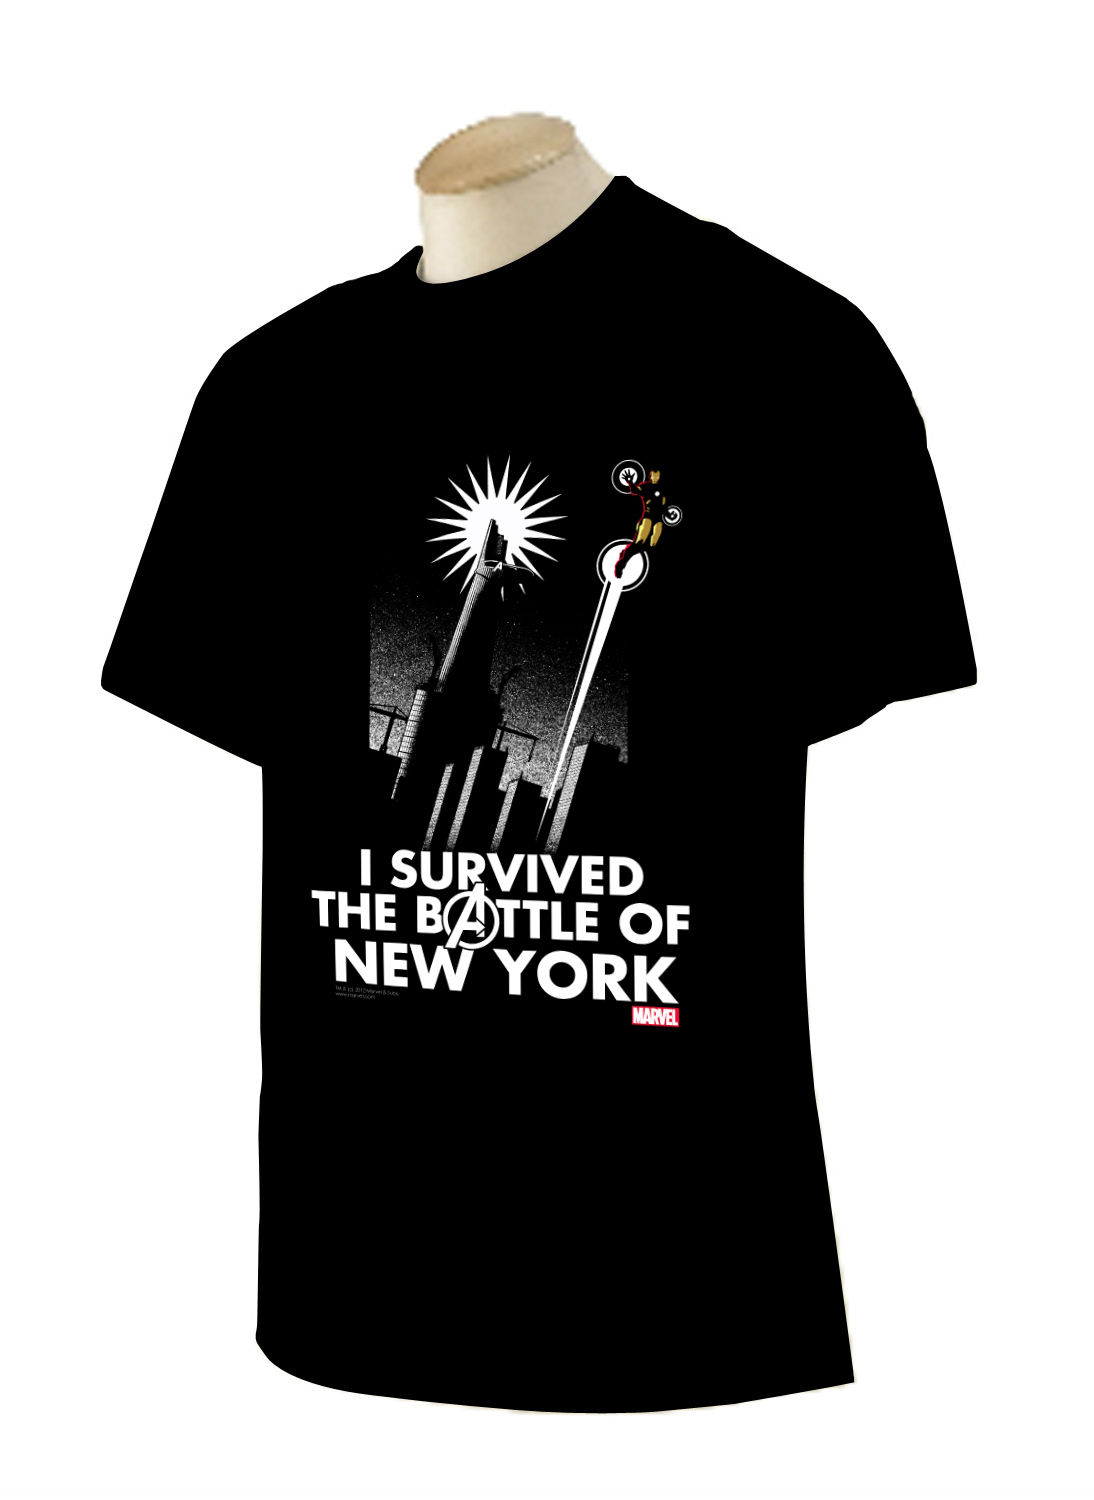 Marvel NYCC AvengersBattleofNewYorkShirt NYCC 2012: Limited Edition Avengers & Guardians of the Galaxy Collectibles